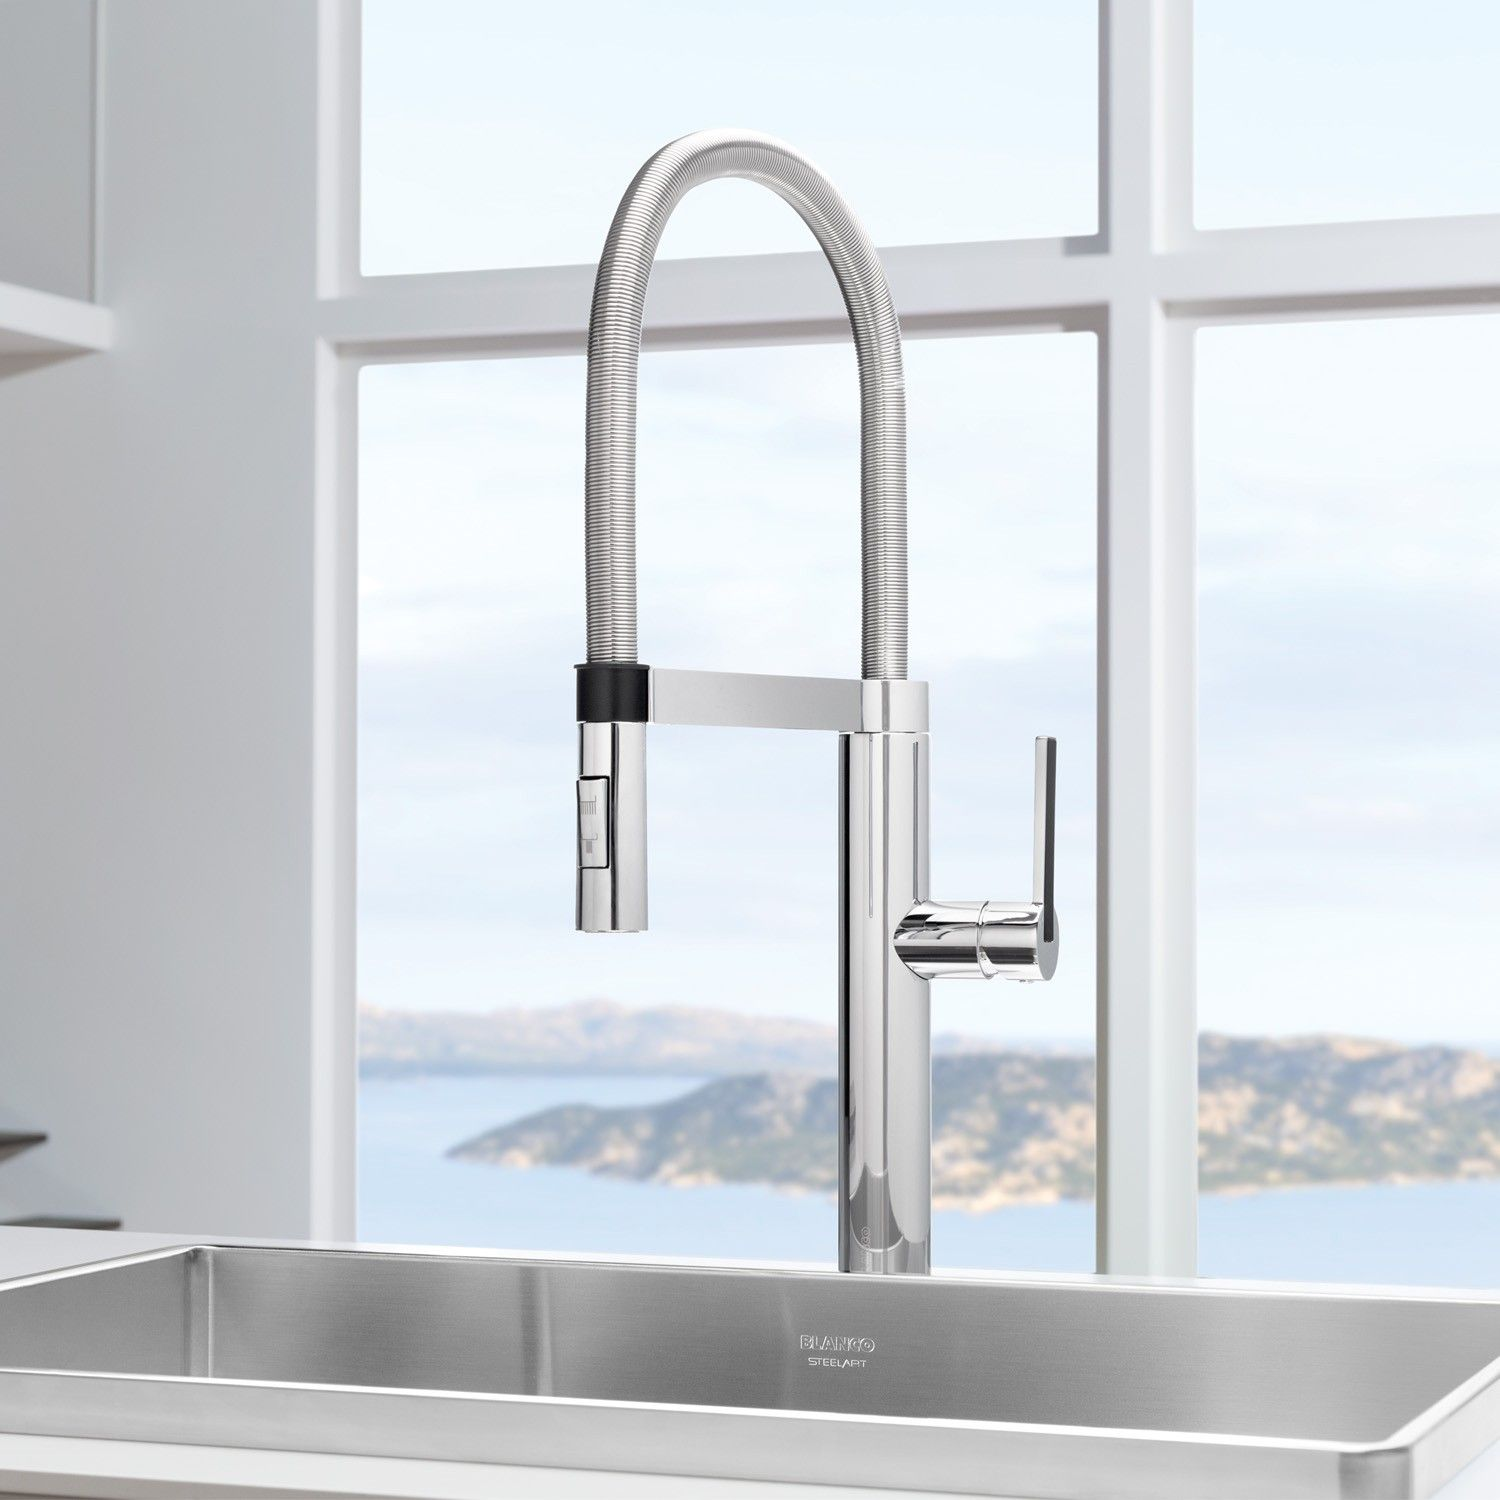 blanco faucet panera design s world if entry guide